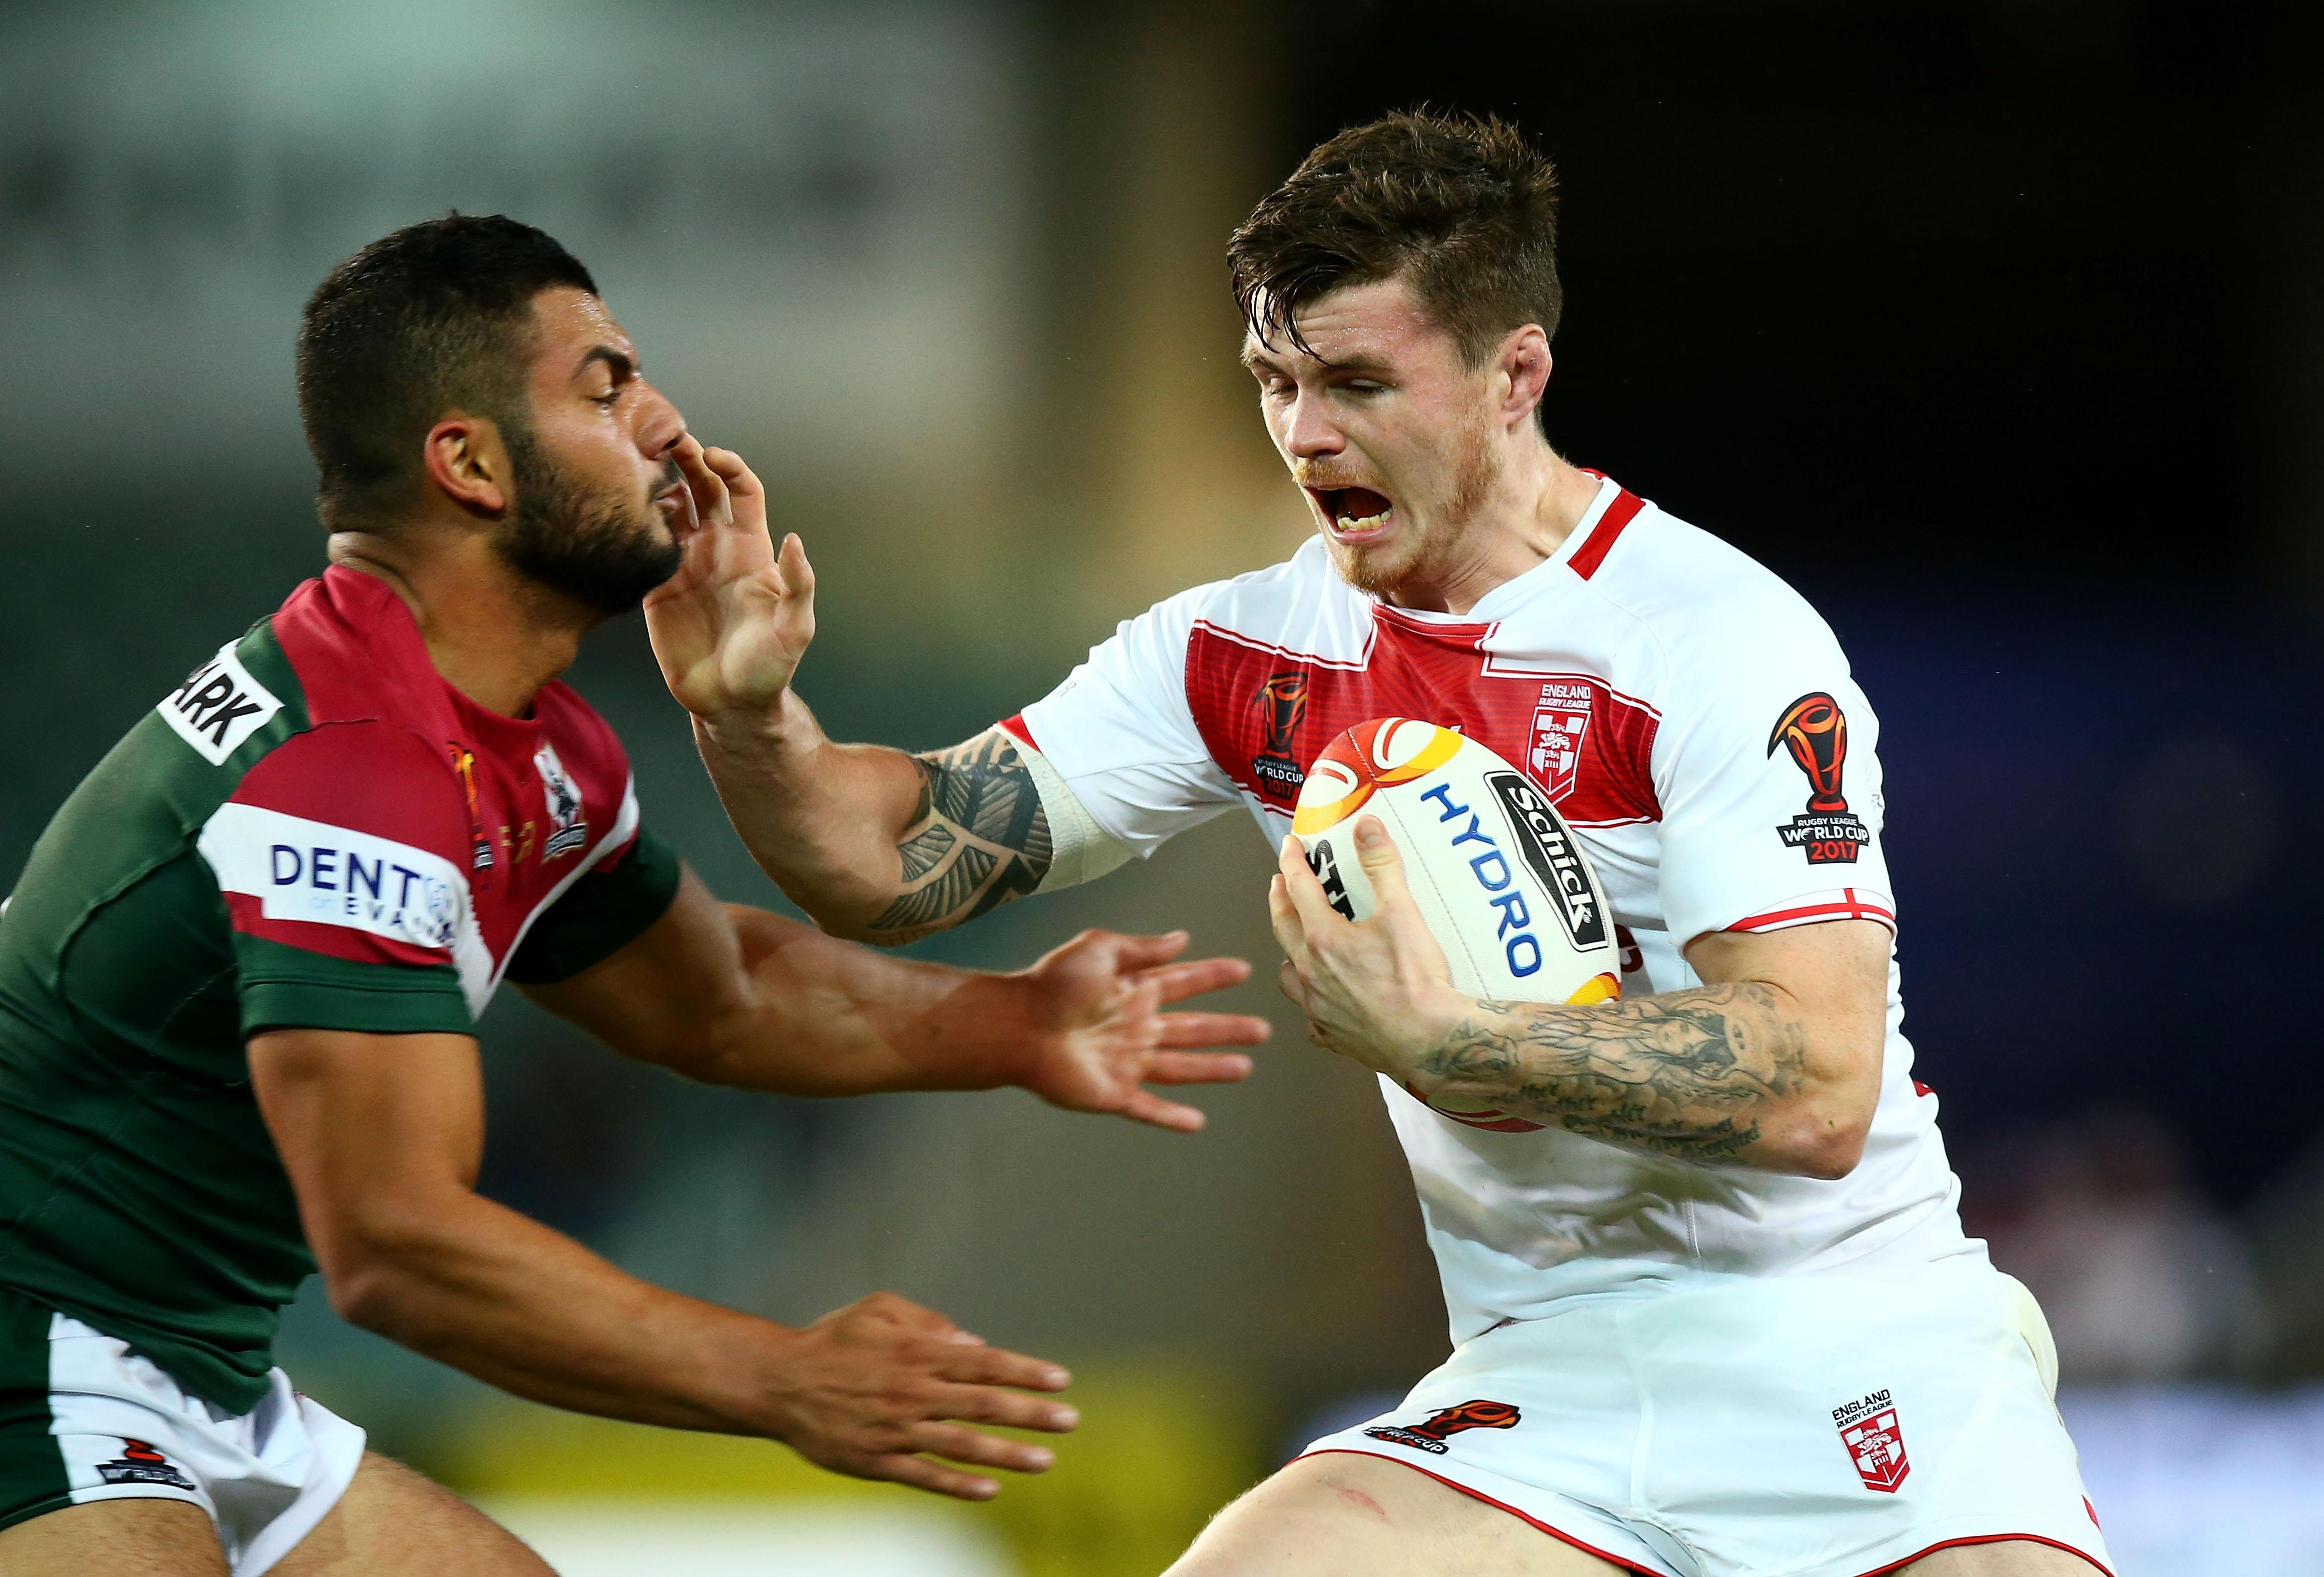 Bateman will take on New Zealand before heading to NRL side Canberra Raiders